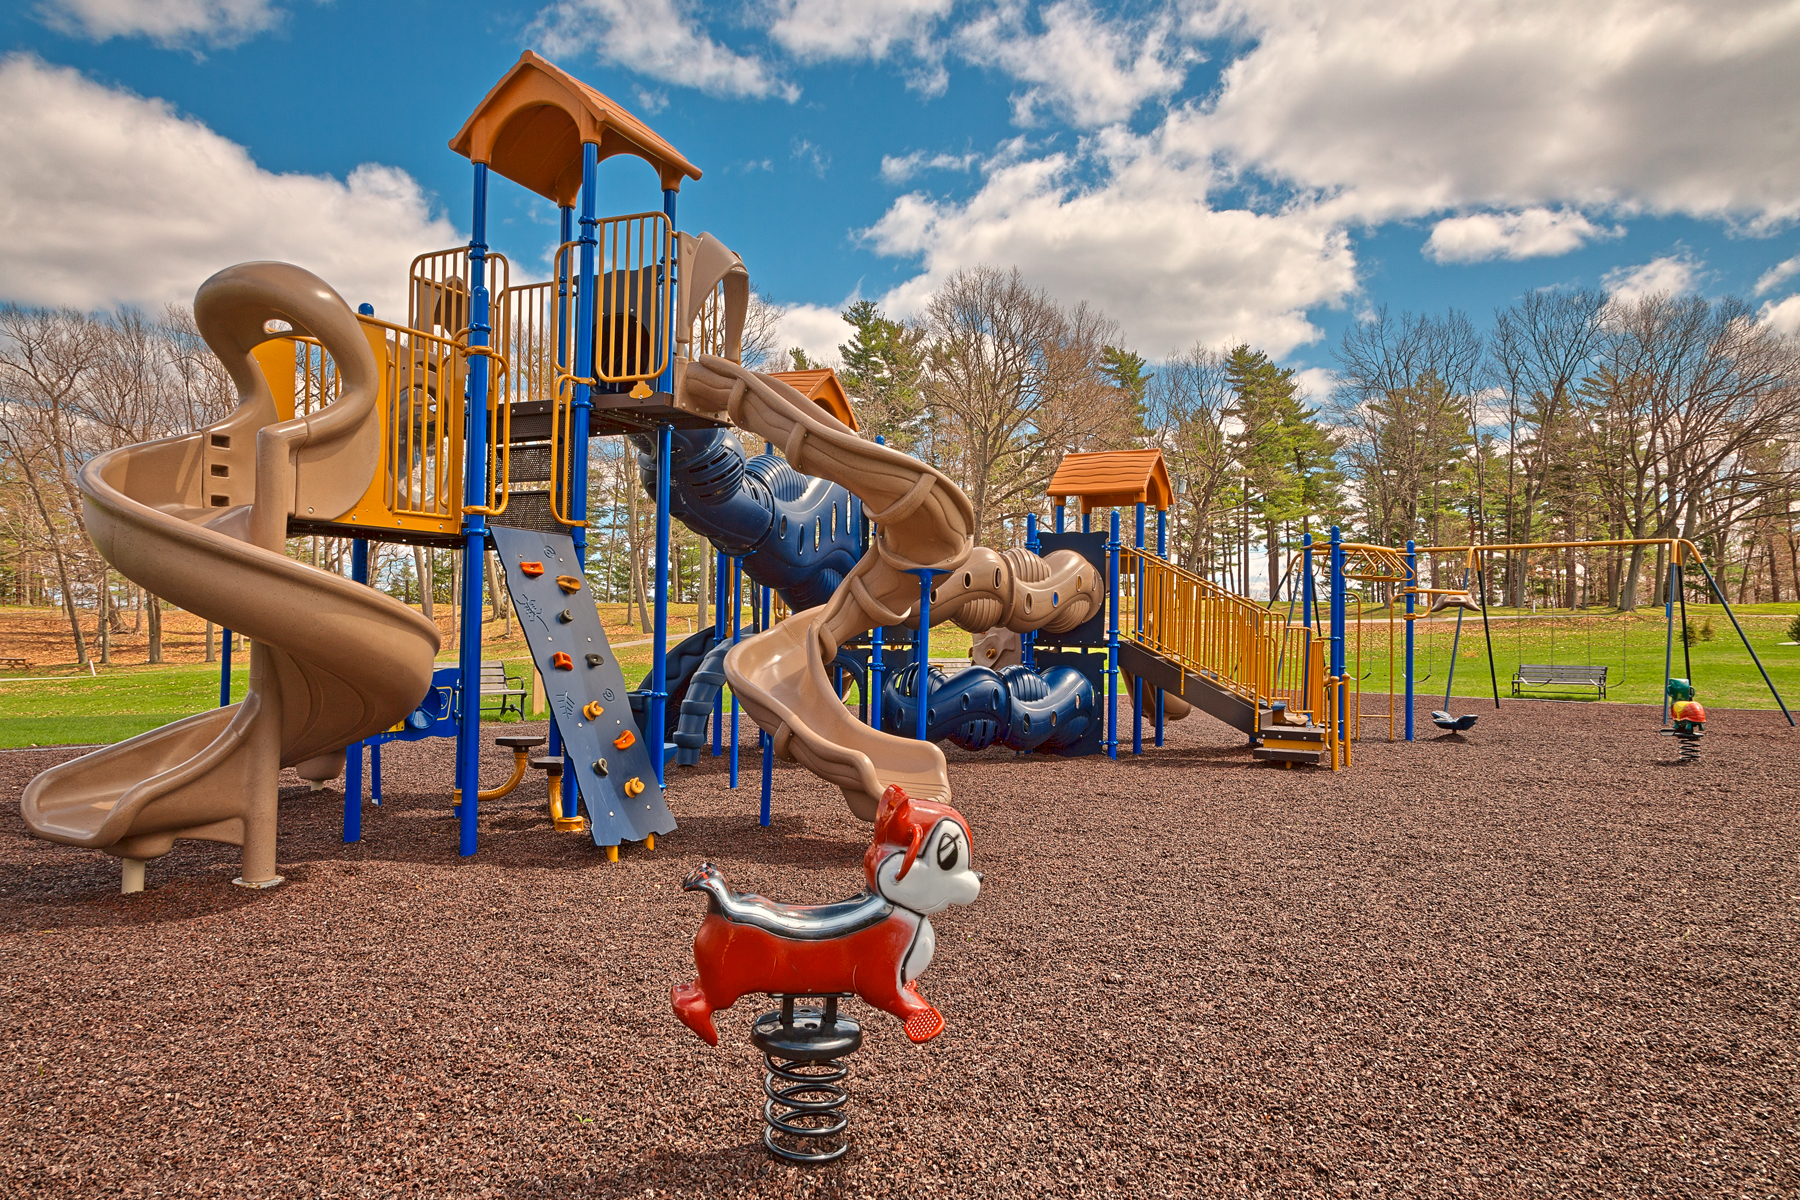 Wellesley island playground - hdr photo